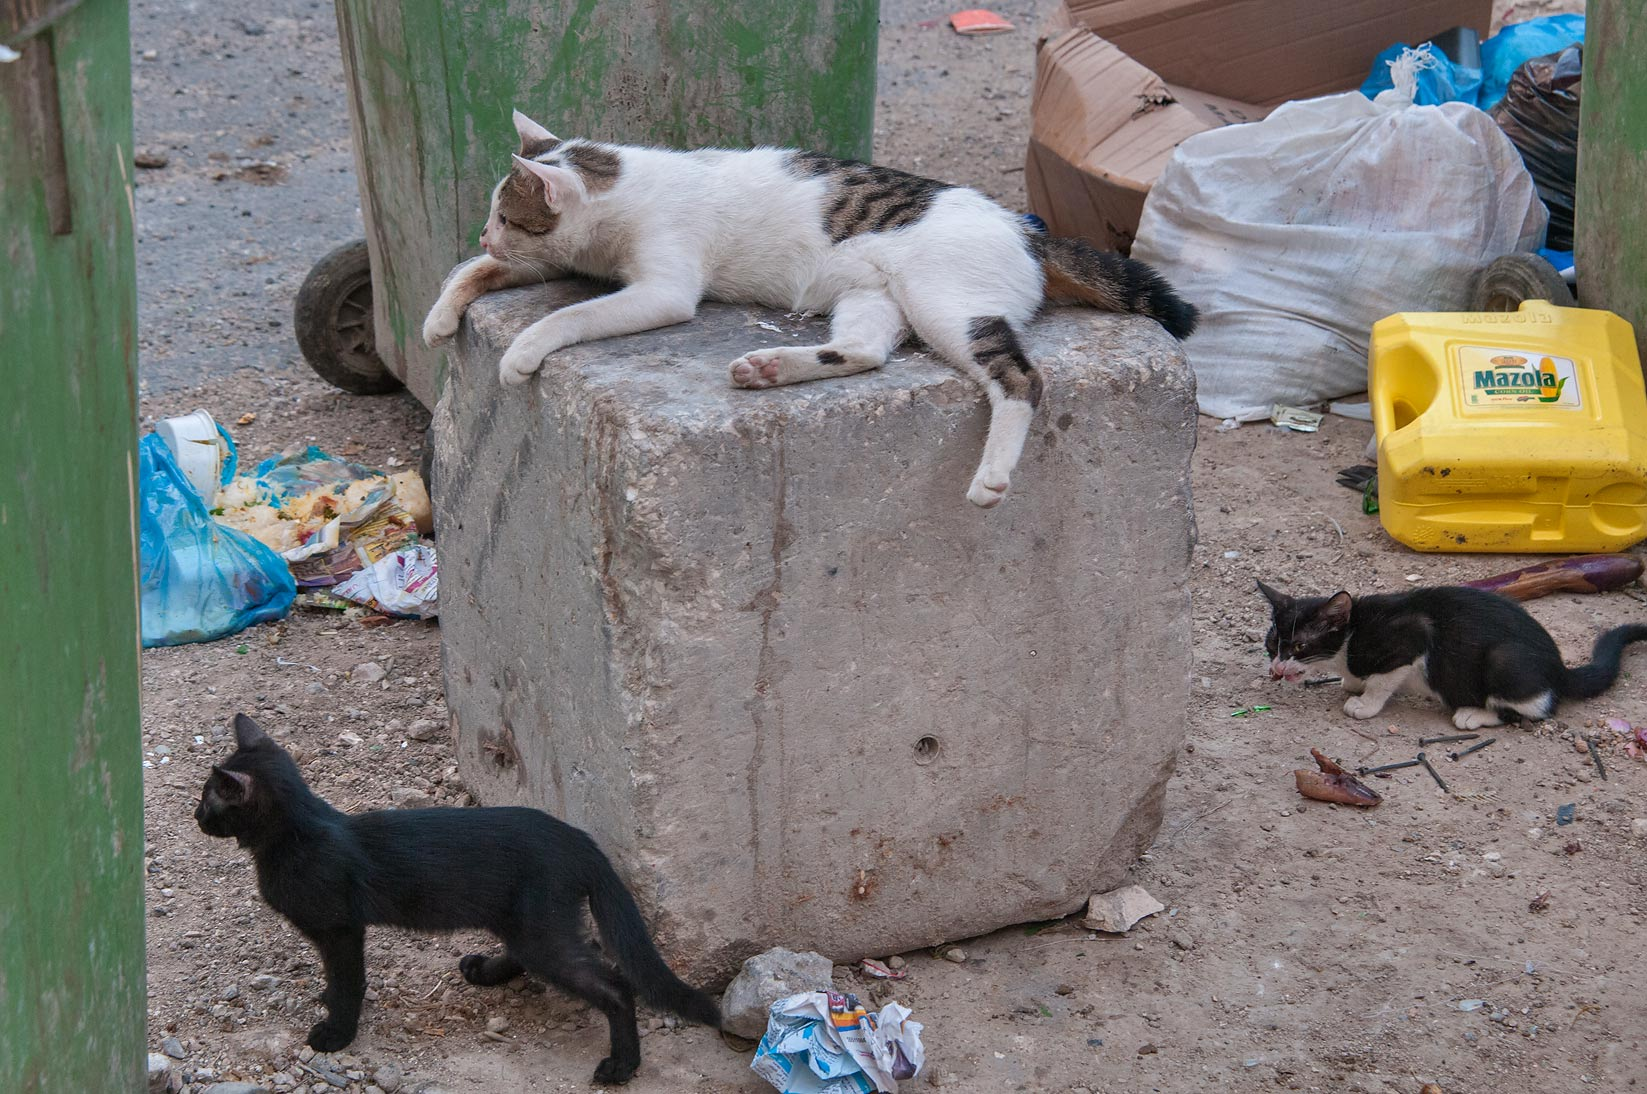 Family of cats on lookout at Aws Bin Al Samit St., Musheirib area. Doha, Qatar